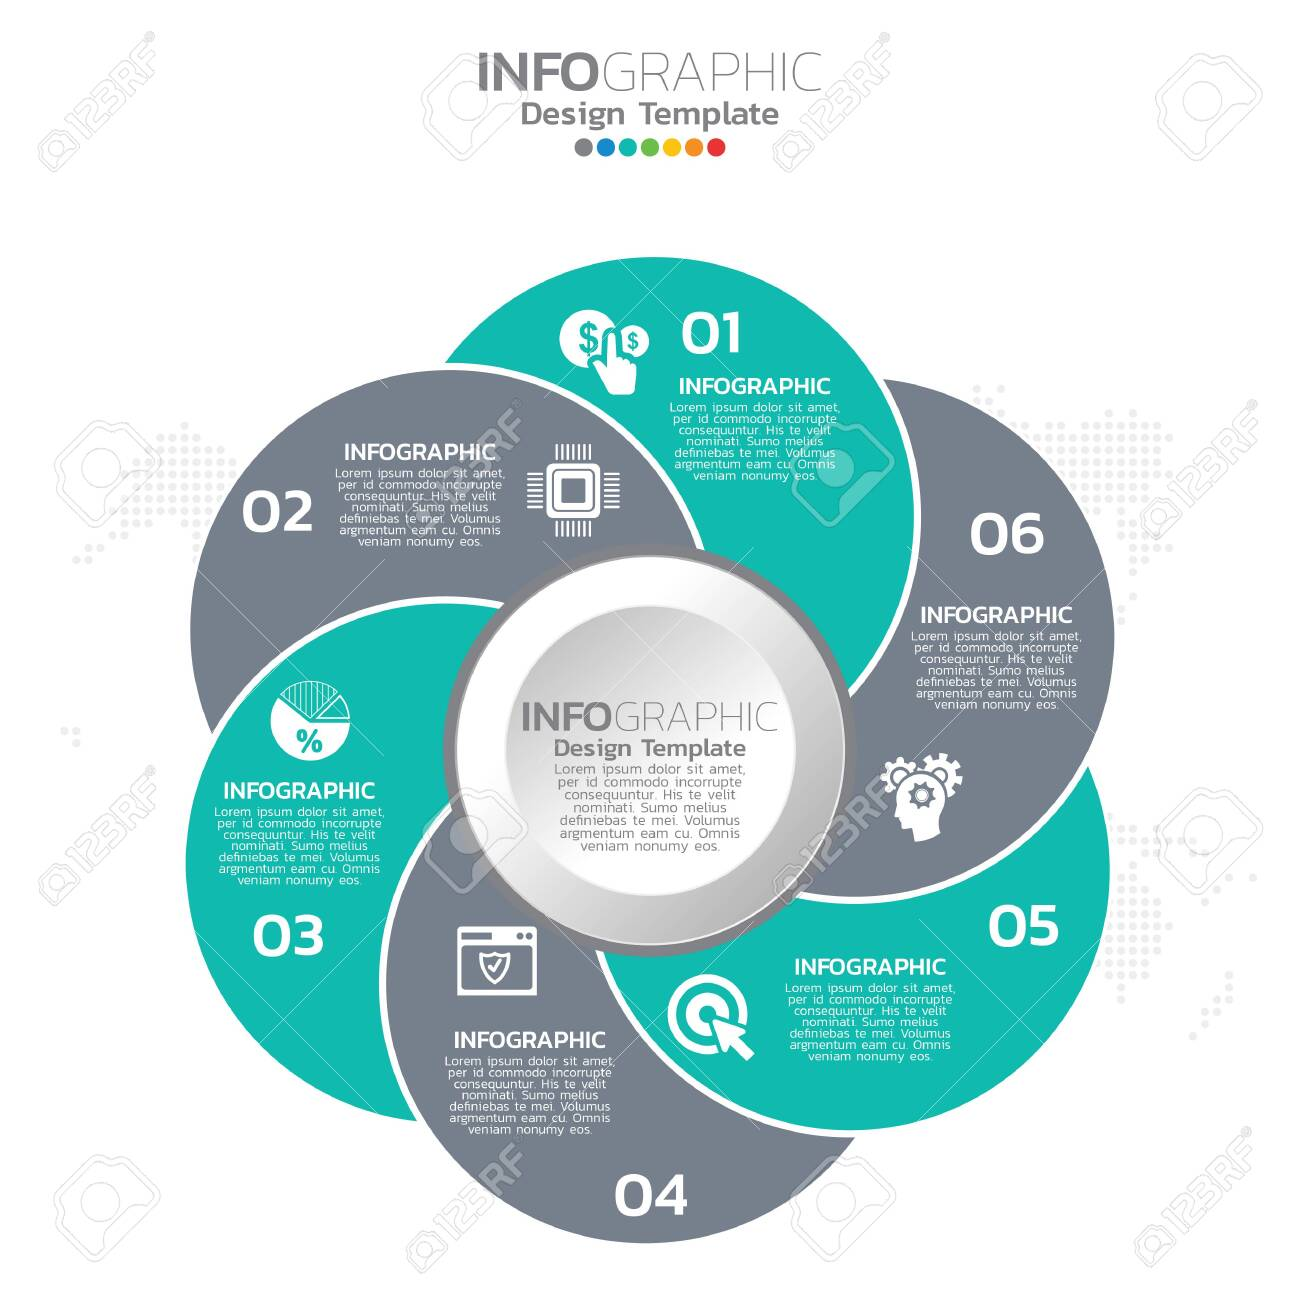 Infographic template design with 6 color options. - 148213798